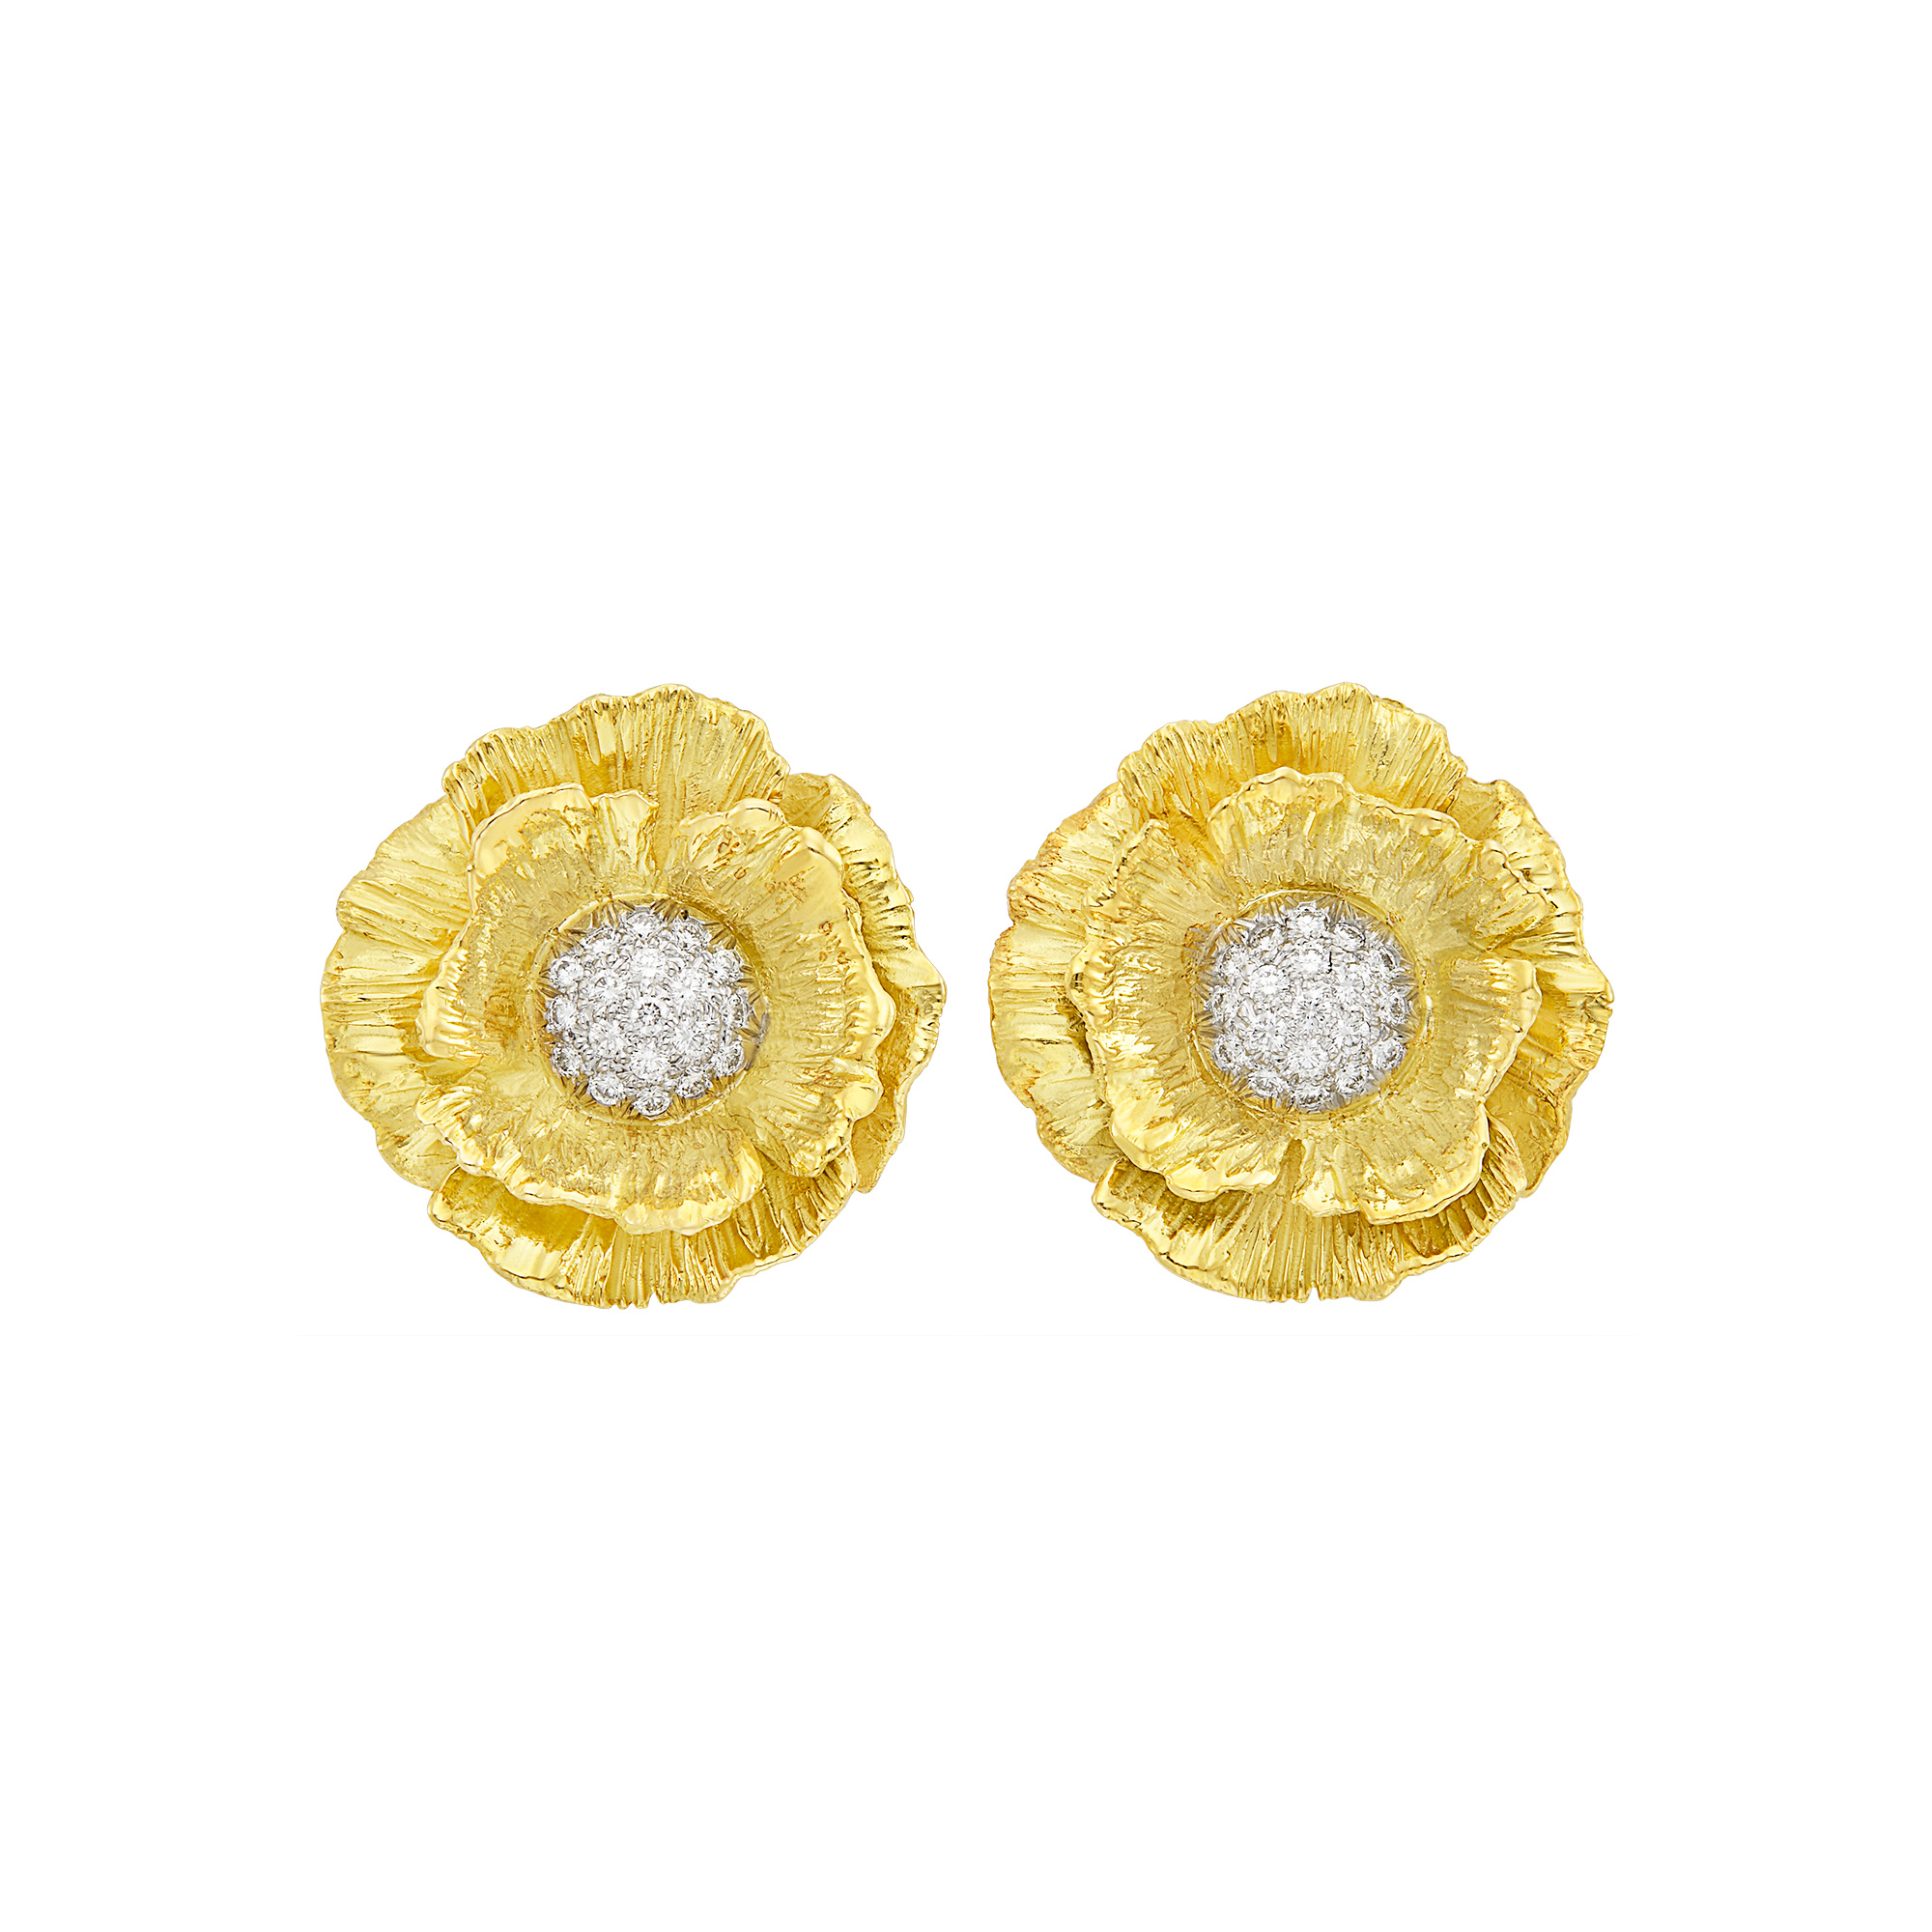 Lot image - Pair of Two-Color Gold and Diamond Flower Earclips, Mish